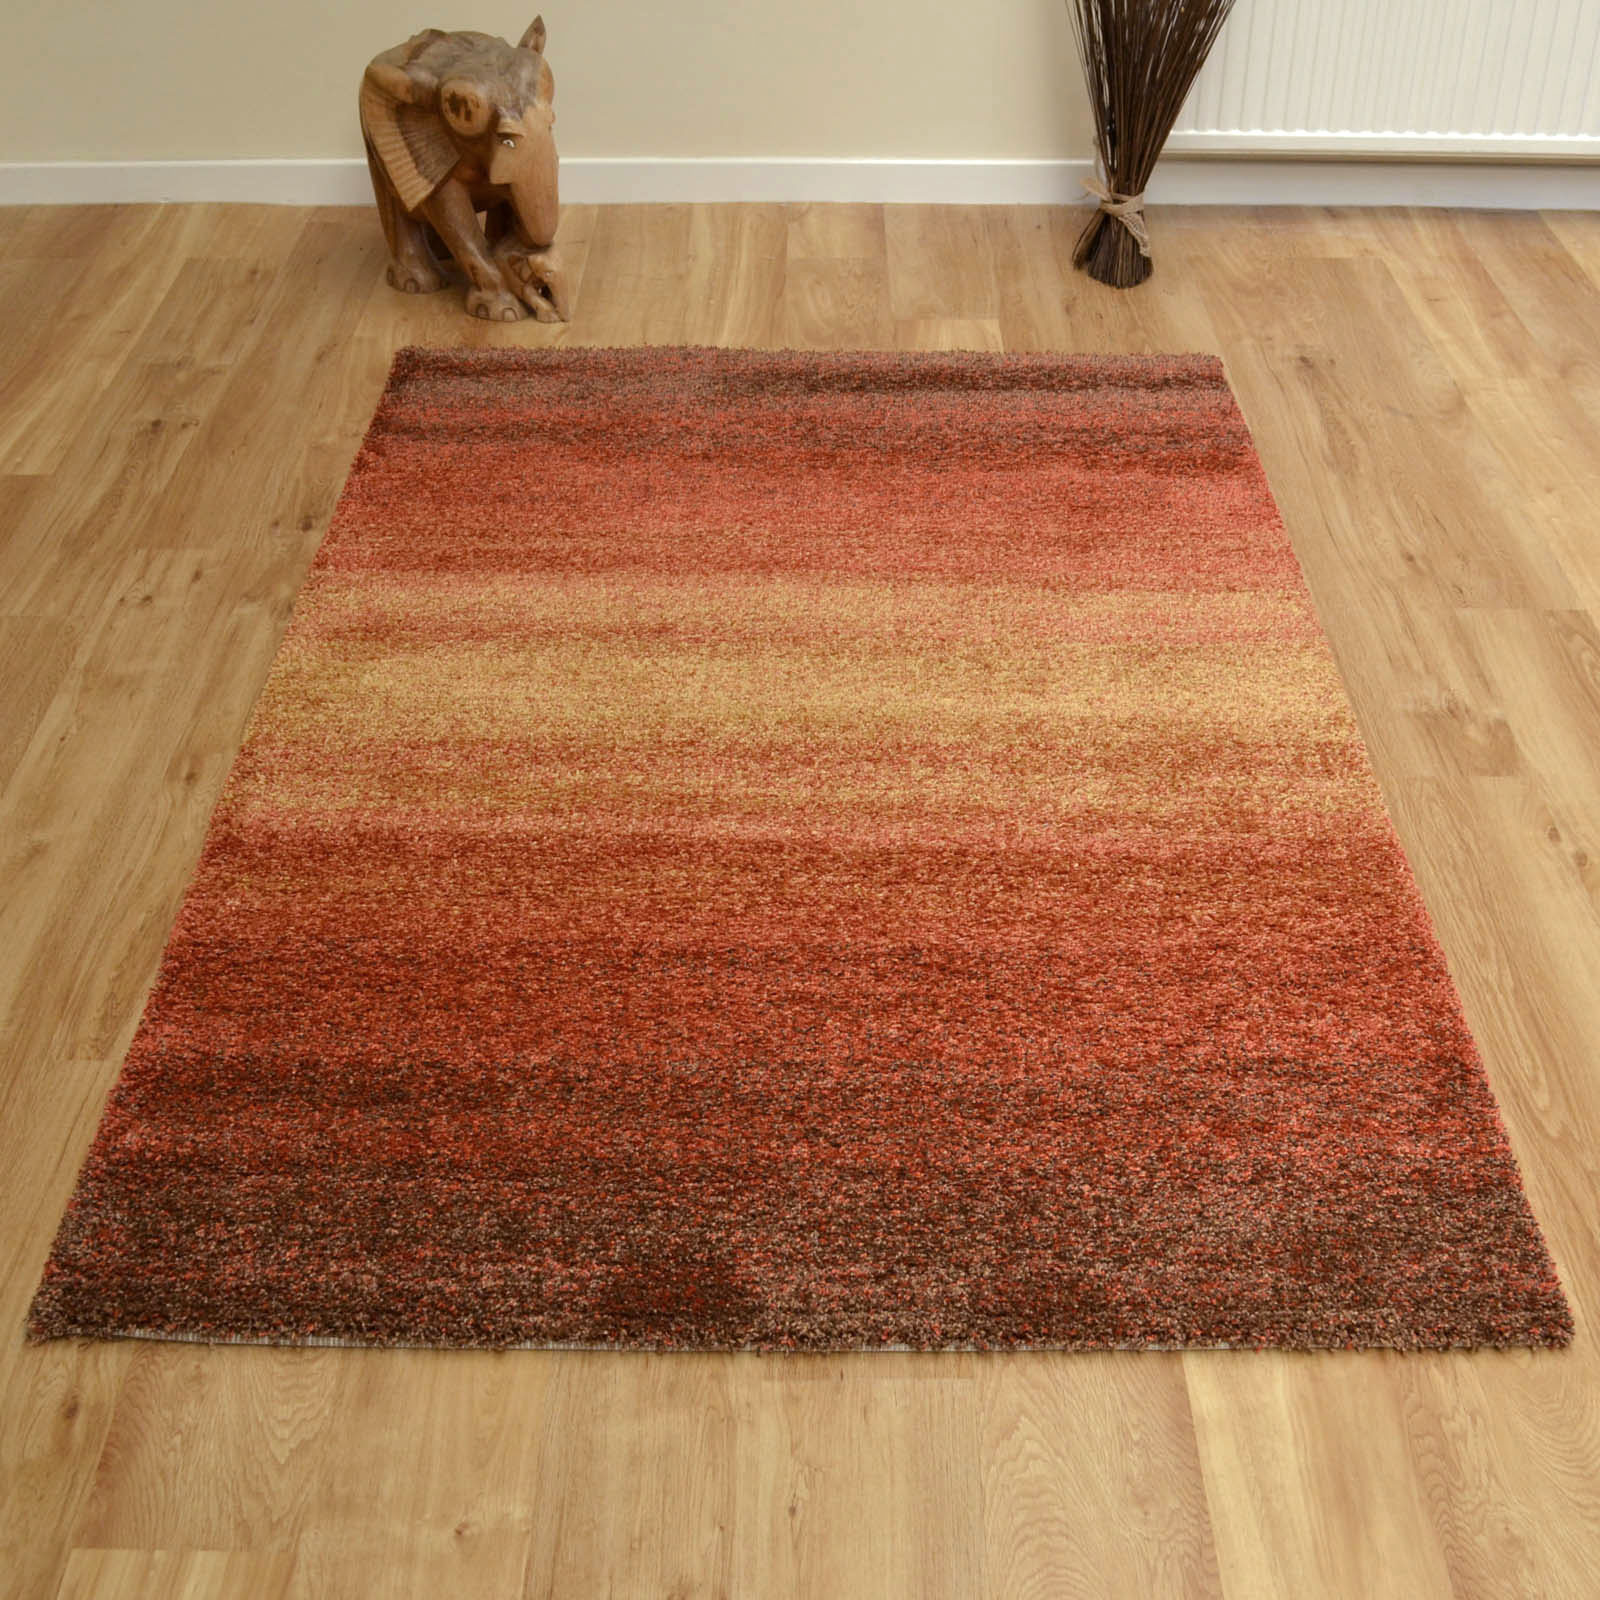 Mehari Rugs 23033 9515 Orange Brown